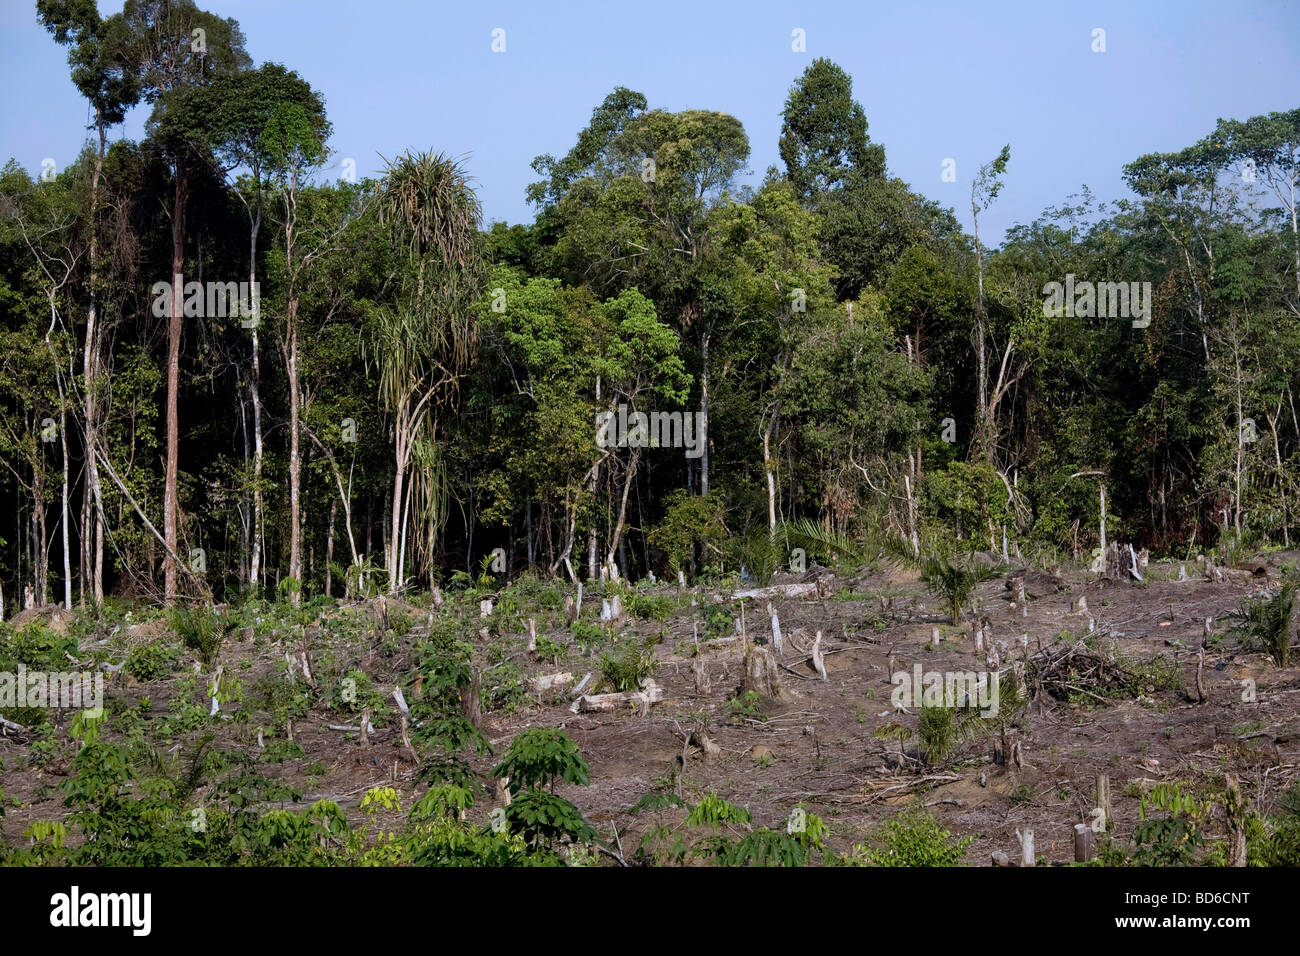 indonesia deforestation Indonesia forest information and data environment - current issues: deforestation water pollution from industrial wastes, sewage air pollution in.